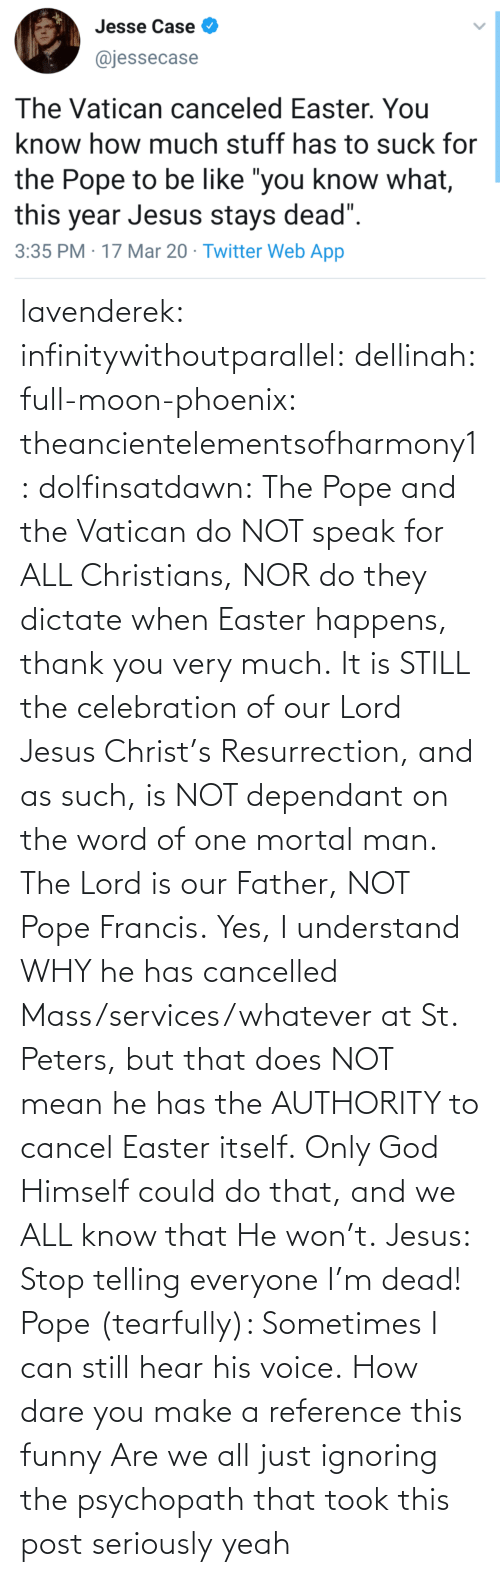 God: lavenderek: infinitywithoutparallel:  dellinah:  full-moon-phoenix:   theancientelementsofharmony1:  dolfinsatdawn:    The Pope and the Vatican do NOT speak for ALL Christians, NOR do they dictate when Easter happens, thank you very much. It is STILL the celebration of our Lord Jesus Christ's Resurrection, and as such, is NOT dependant on the word of one mortal man. The Lord is our Father, NOT Pope Francis. Yes, I understand WHY he has cancelled Mass/services/whatever at St. Peters, but that does NOT mean he has the AUTHORITY to cancel Easter itself. Only God Himself could do that, and we ALL know that He won't.    Jesus: Stop telling everyone I'm dead! Pope (tearfully): Sometimes I can still hear his voice.    How dare you make a reference this funny    Are we all just ignoring the psychopath that took this post seriously     yeah